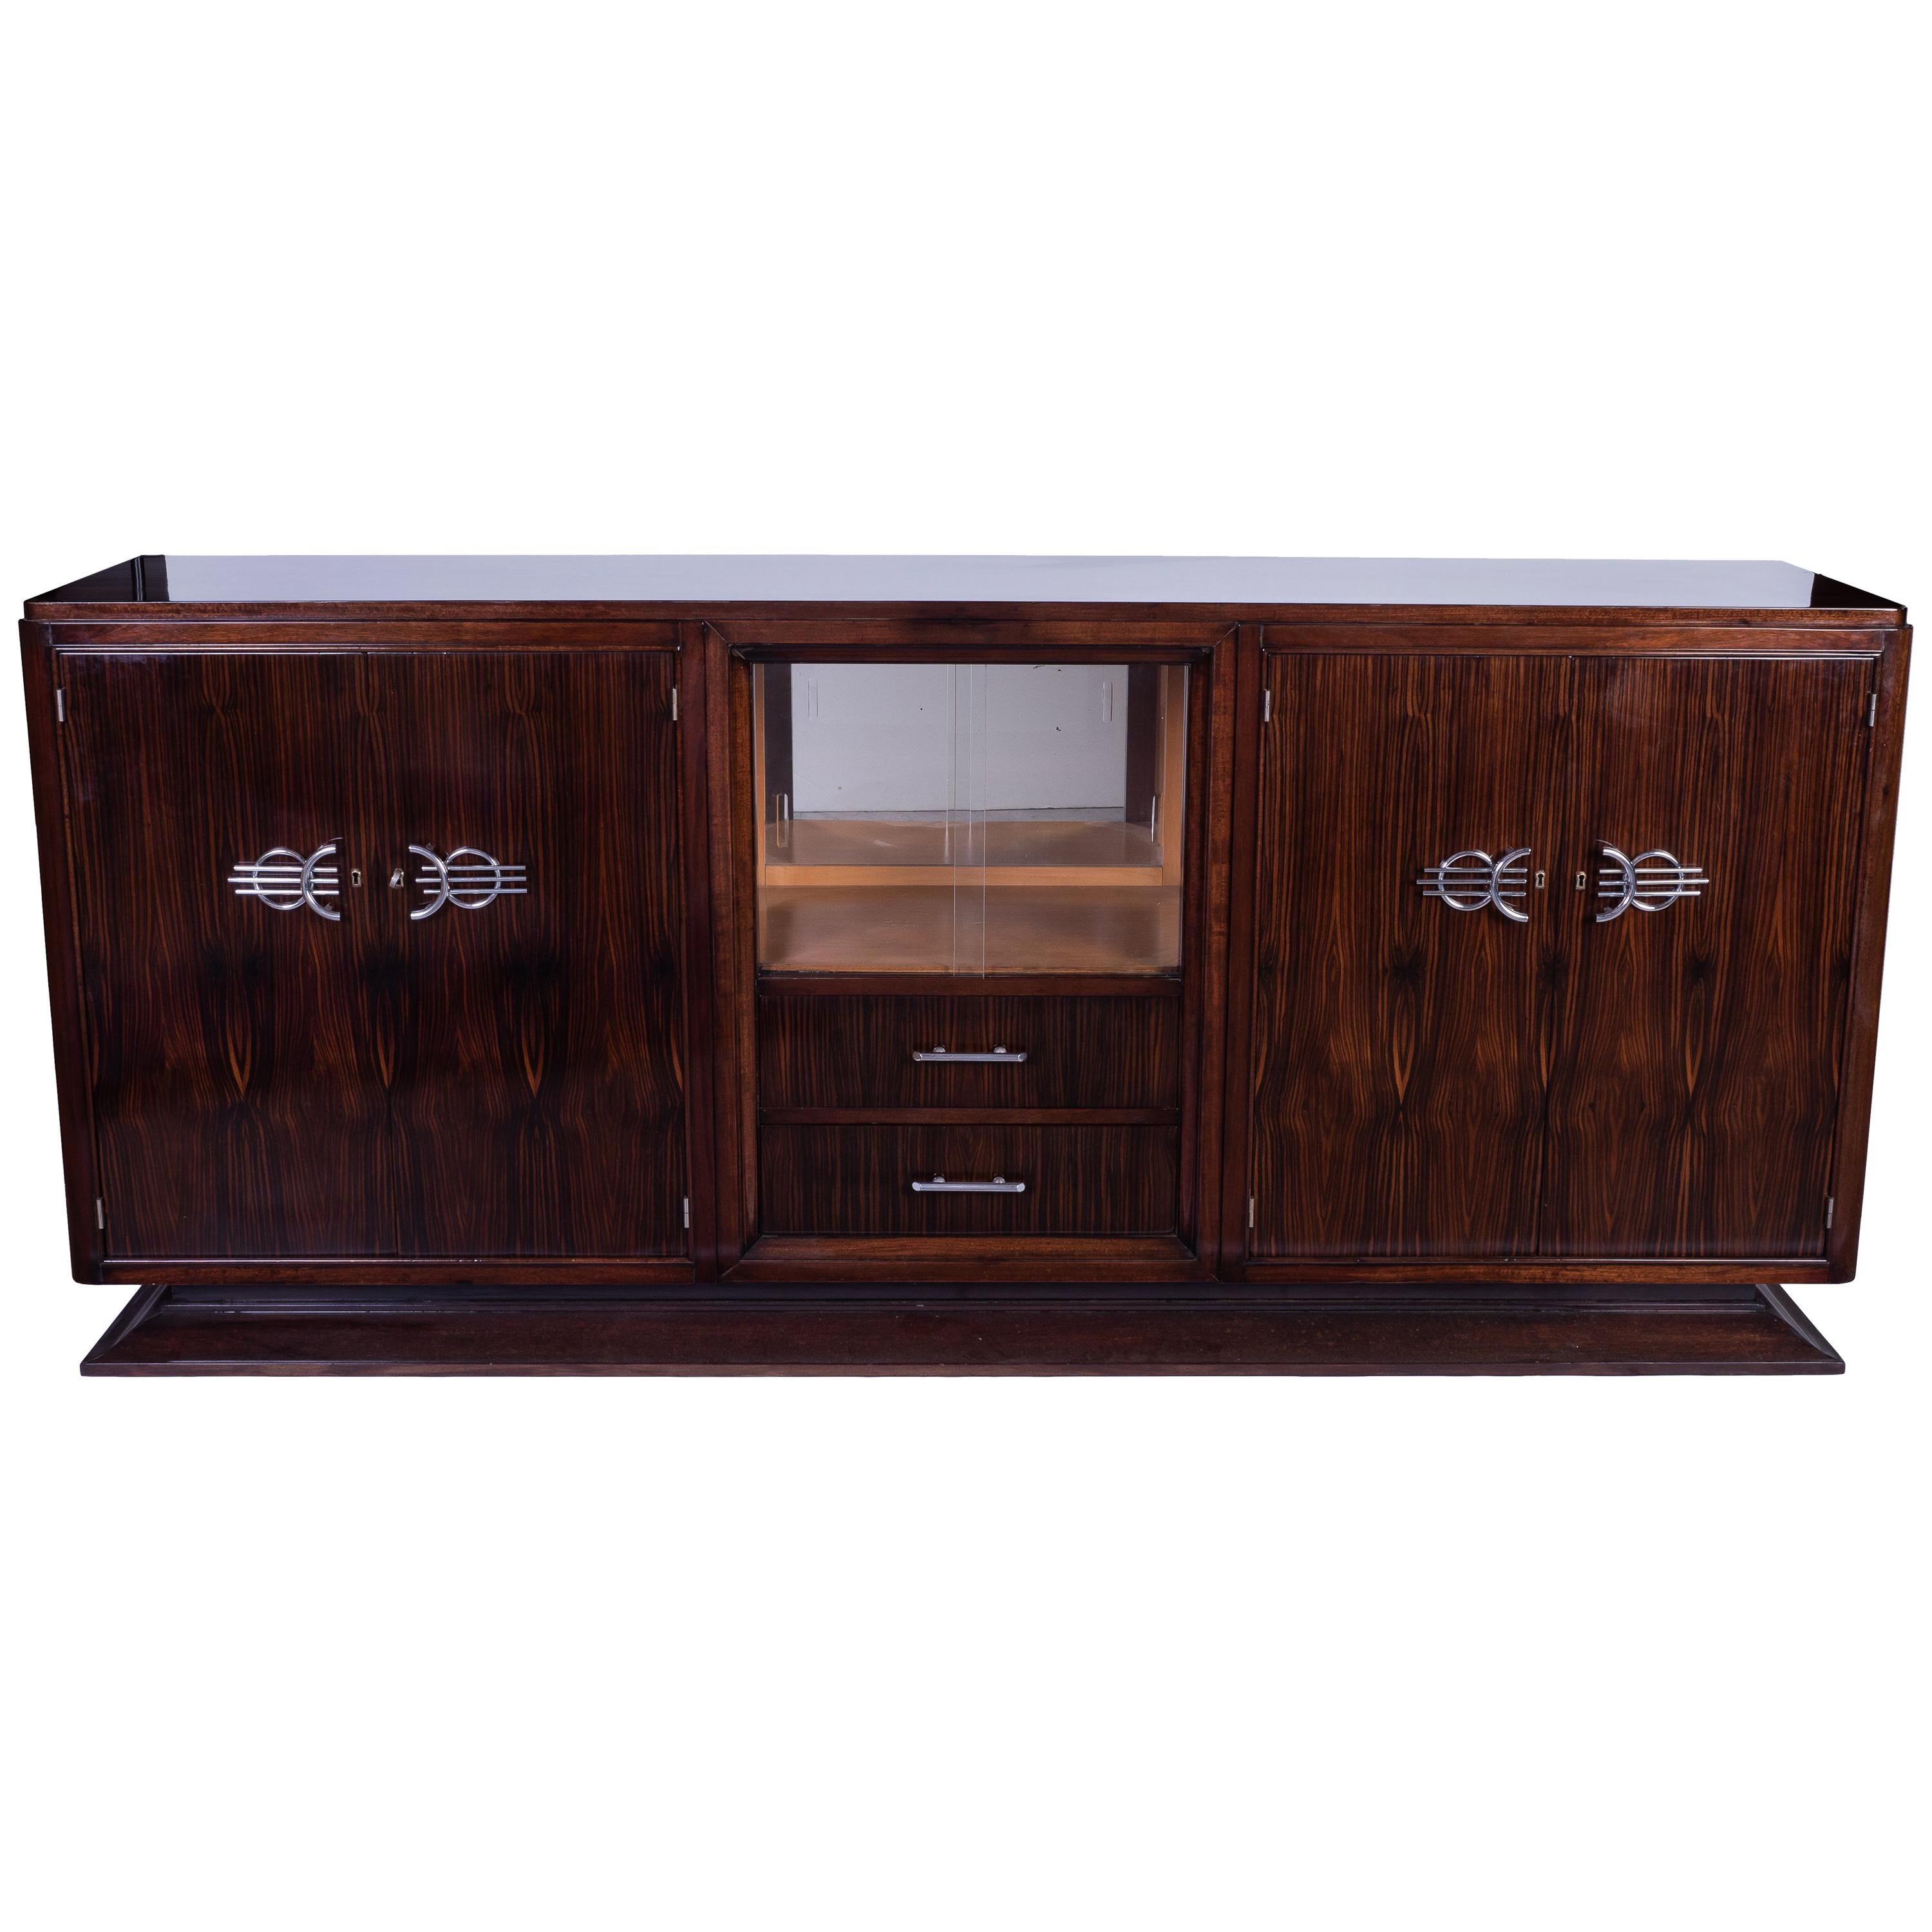 French Art Deco Buffet or Sideboard